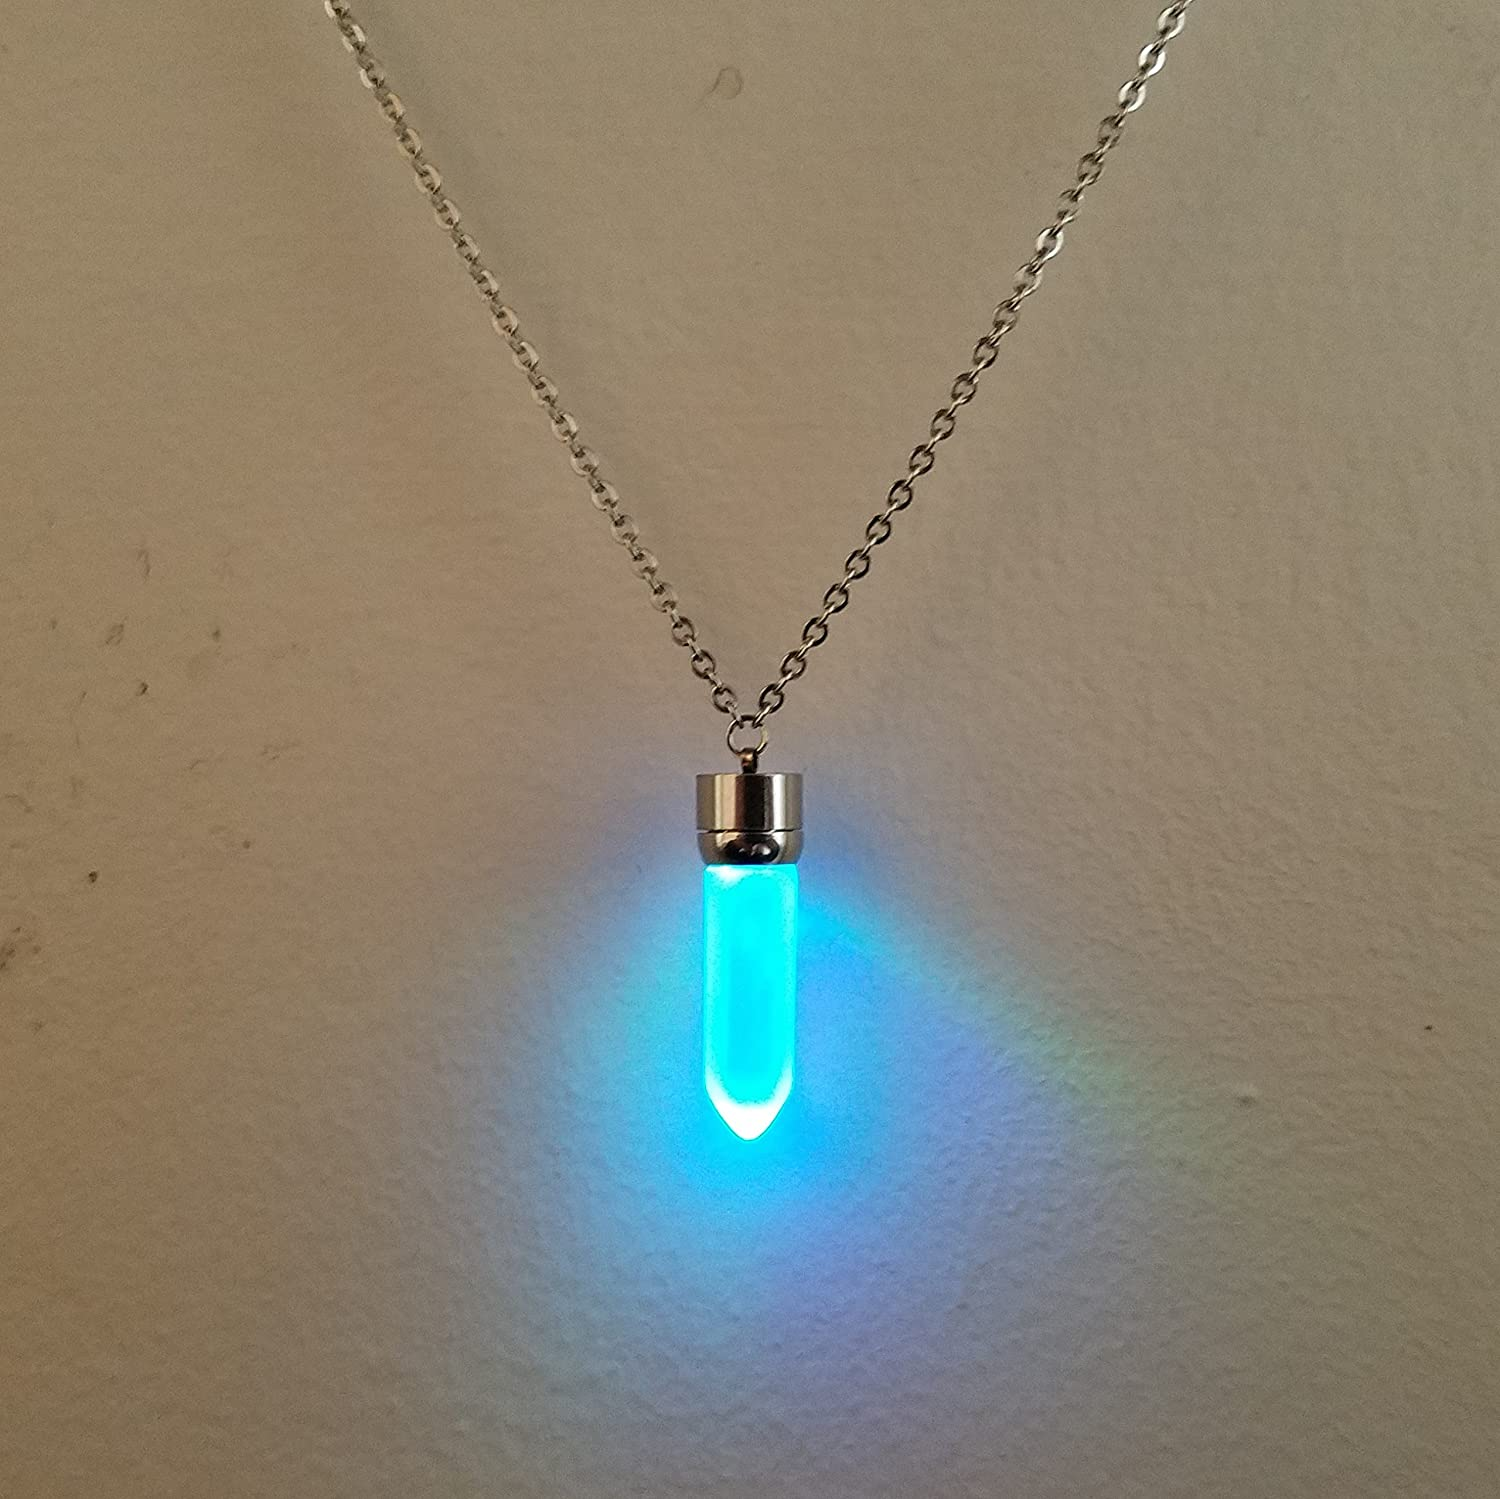 LED Light up Crystal Pendant Necklace - Glow crystal jewelry Necklace (multicolor)